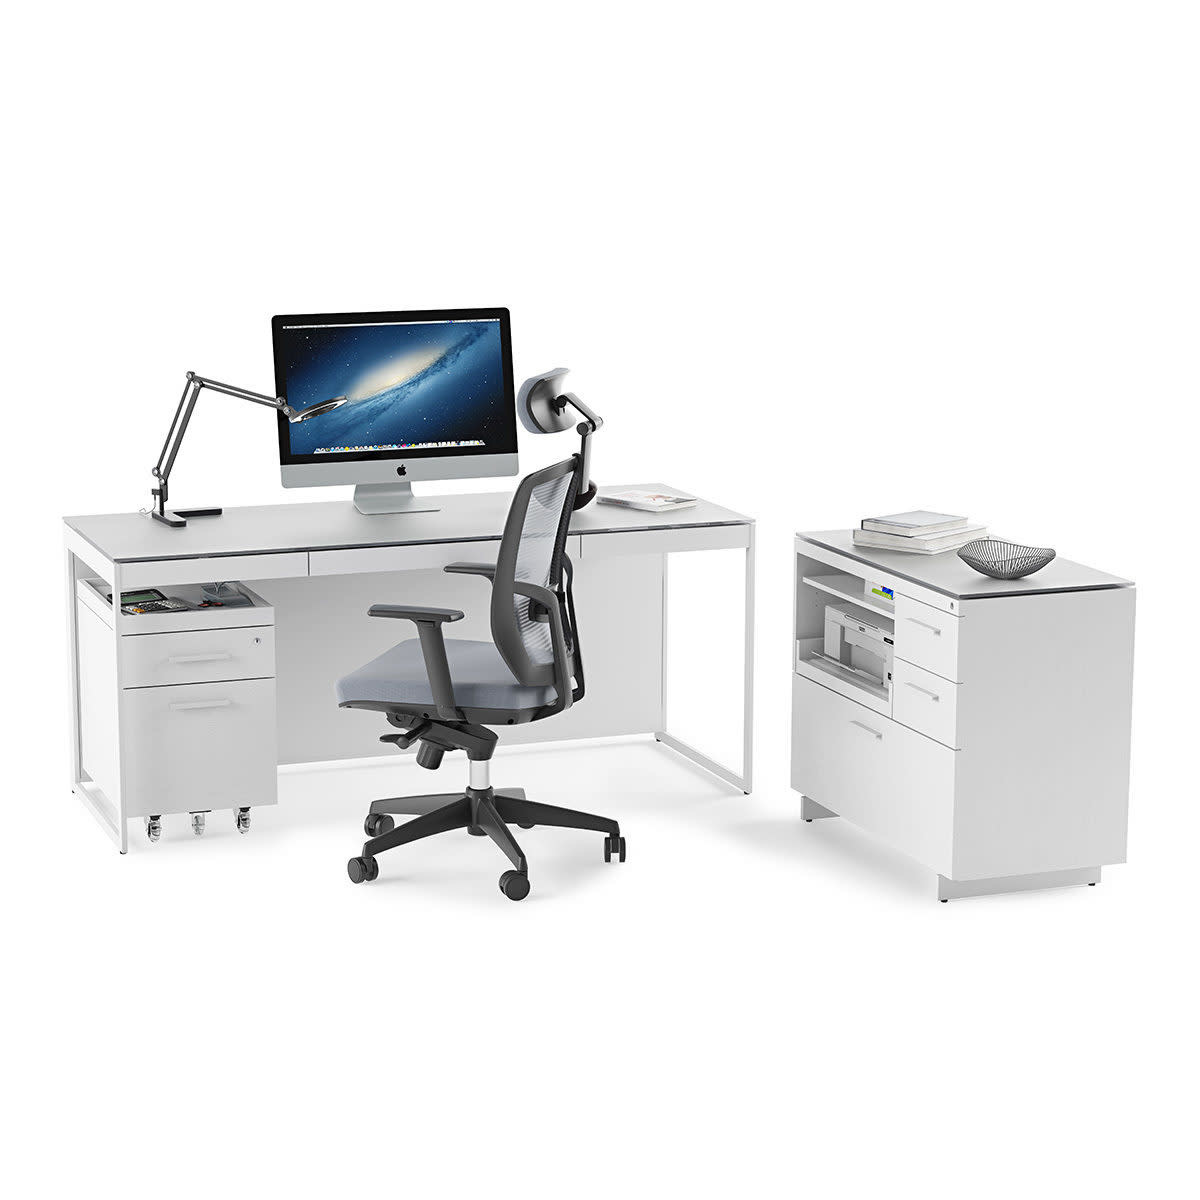 BDI Centro 6417 Multifunction Office Cabinet